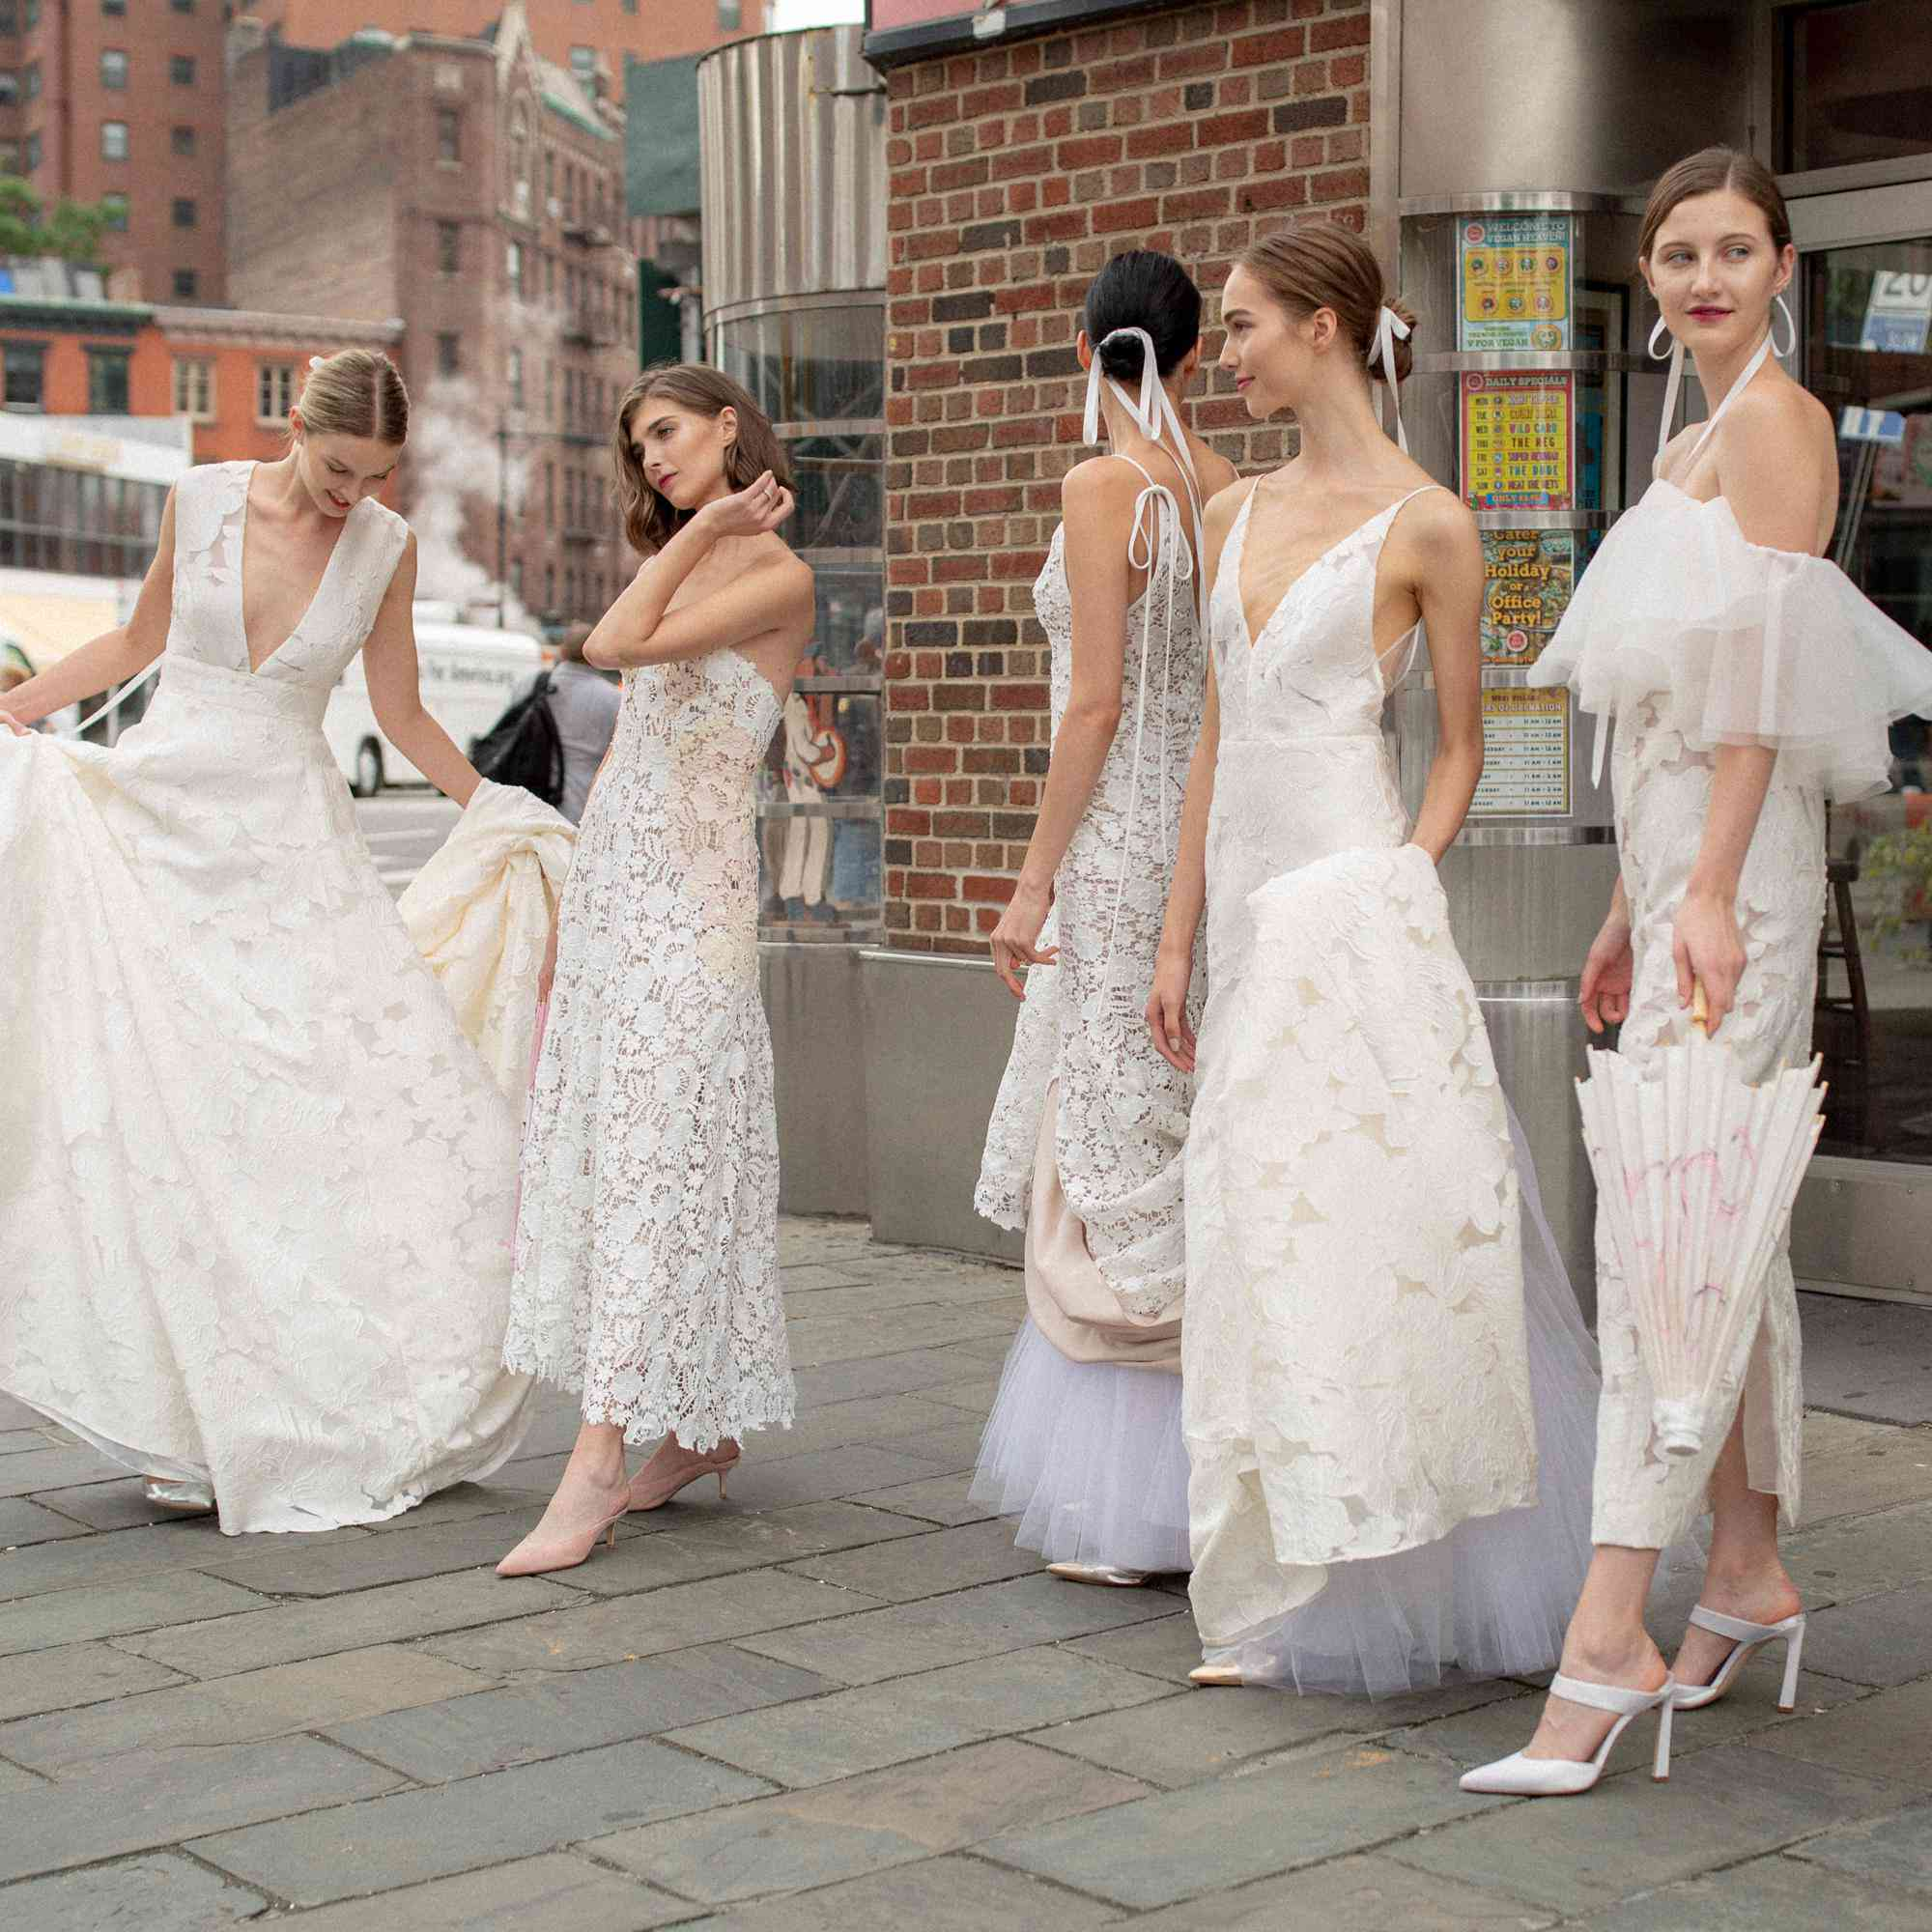 2019 Wedding Trends.11 Fall 2019 Wedding Dress Trends You Have To See